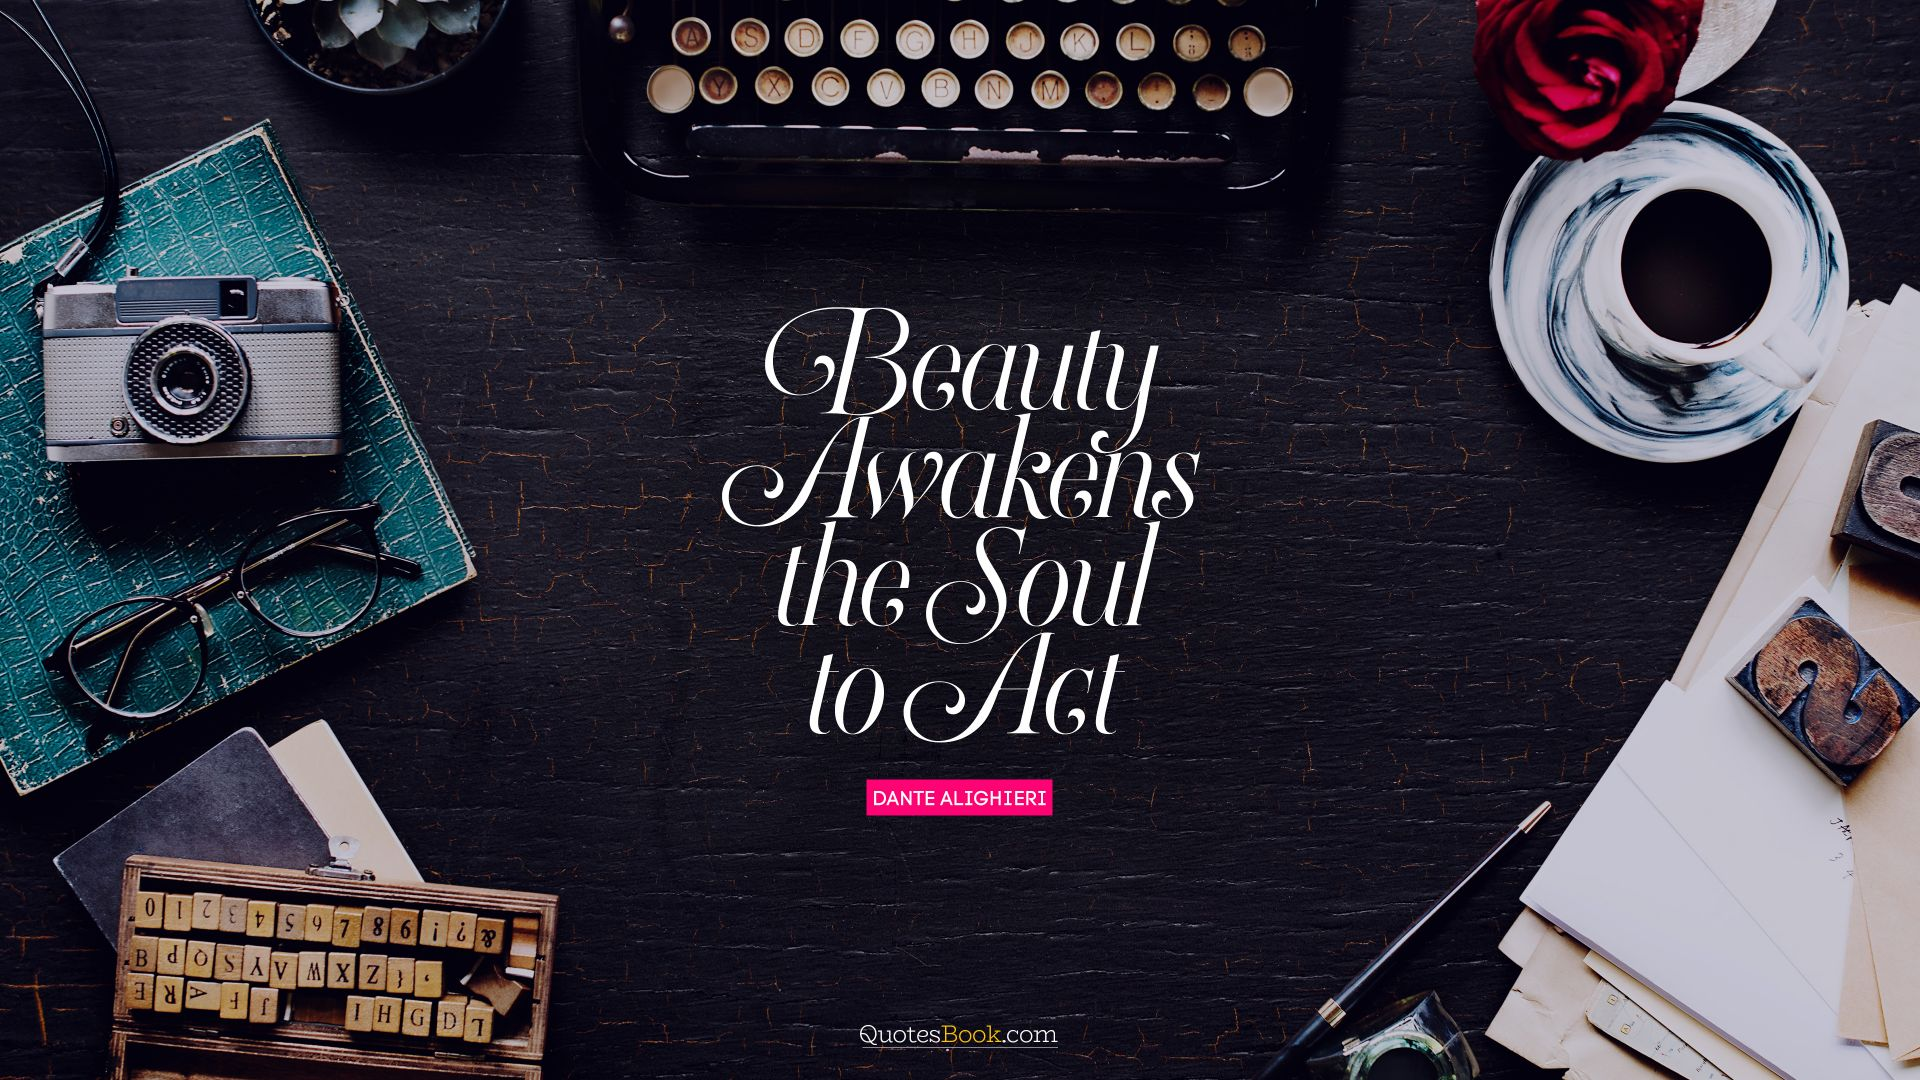 Beauty awakens the soul to act. - Quote by Dante Alighieri